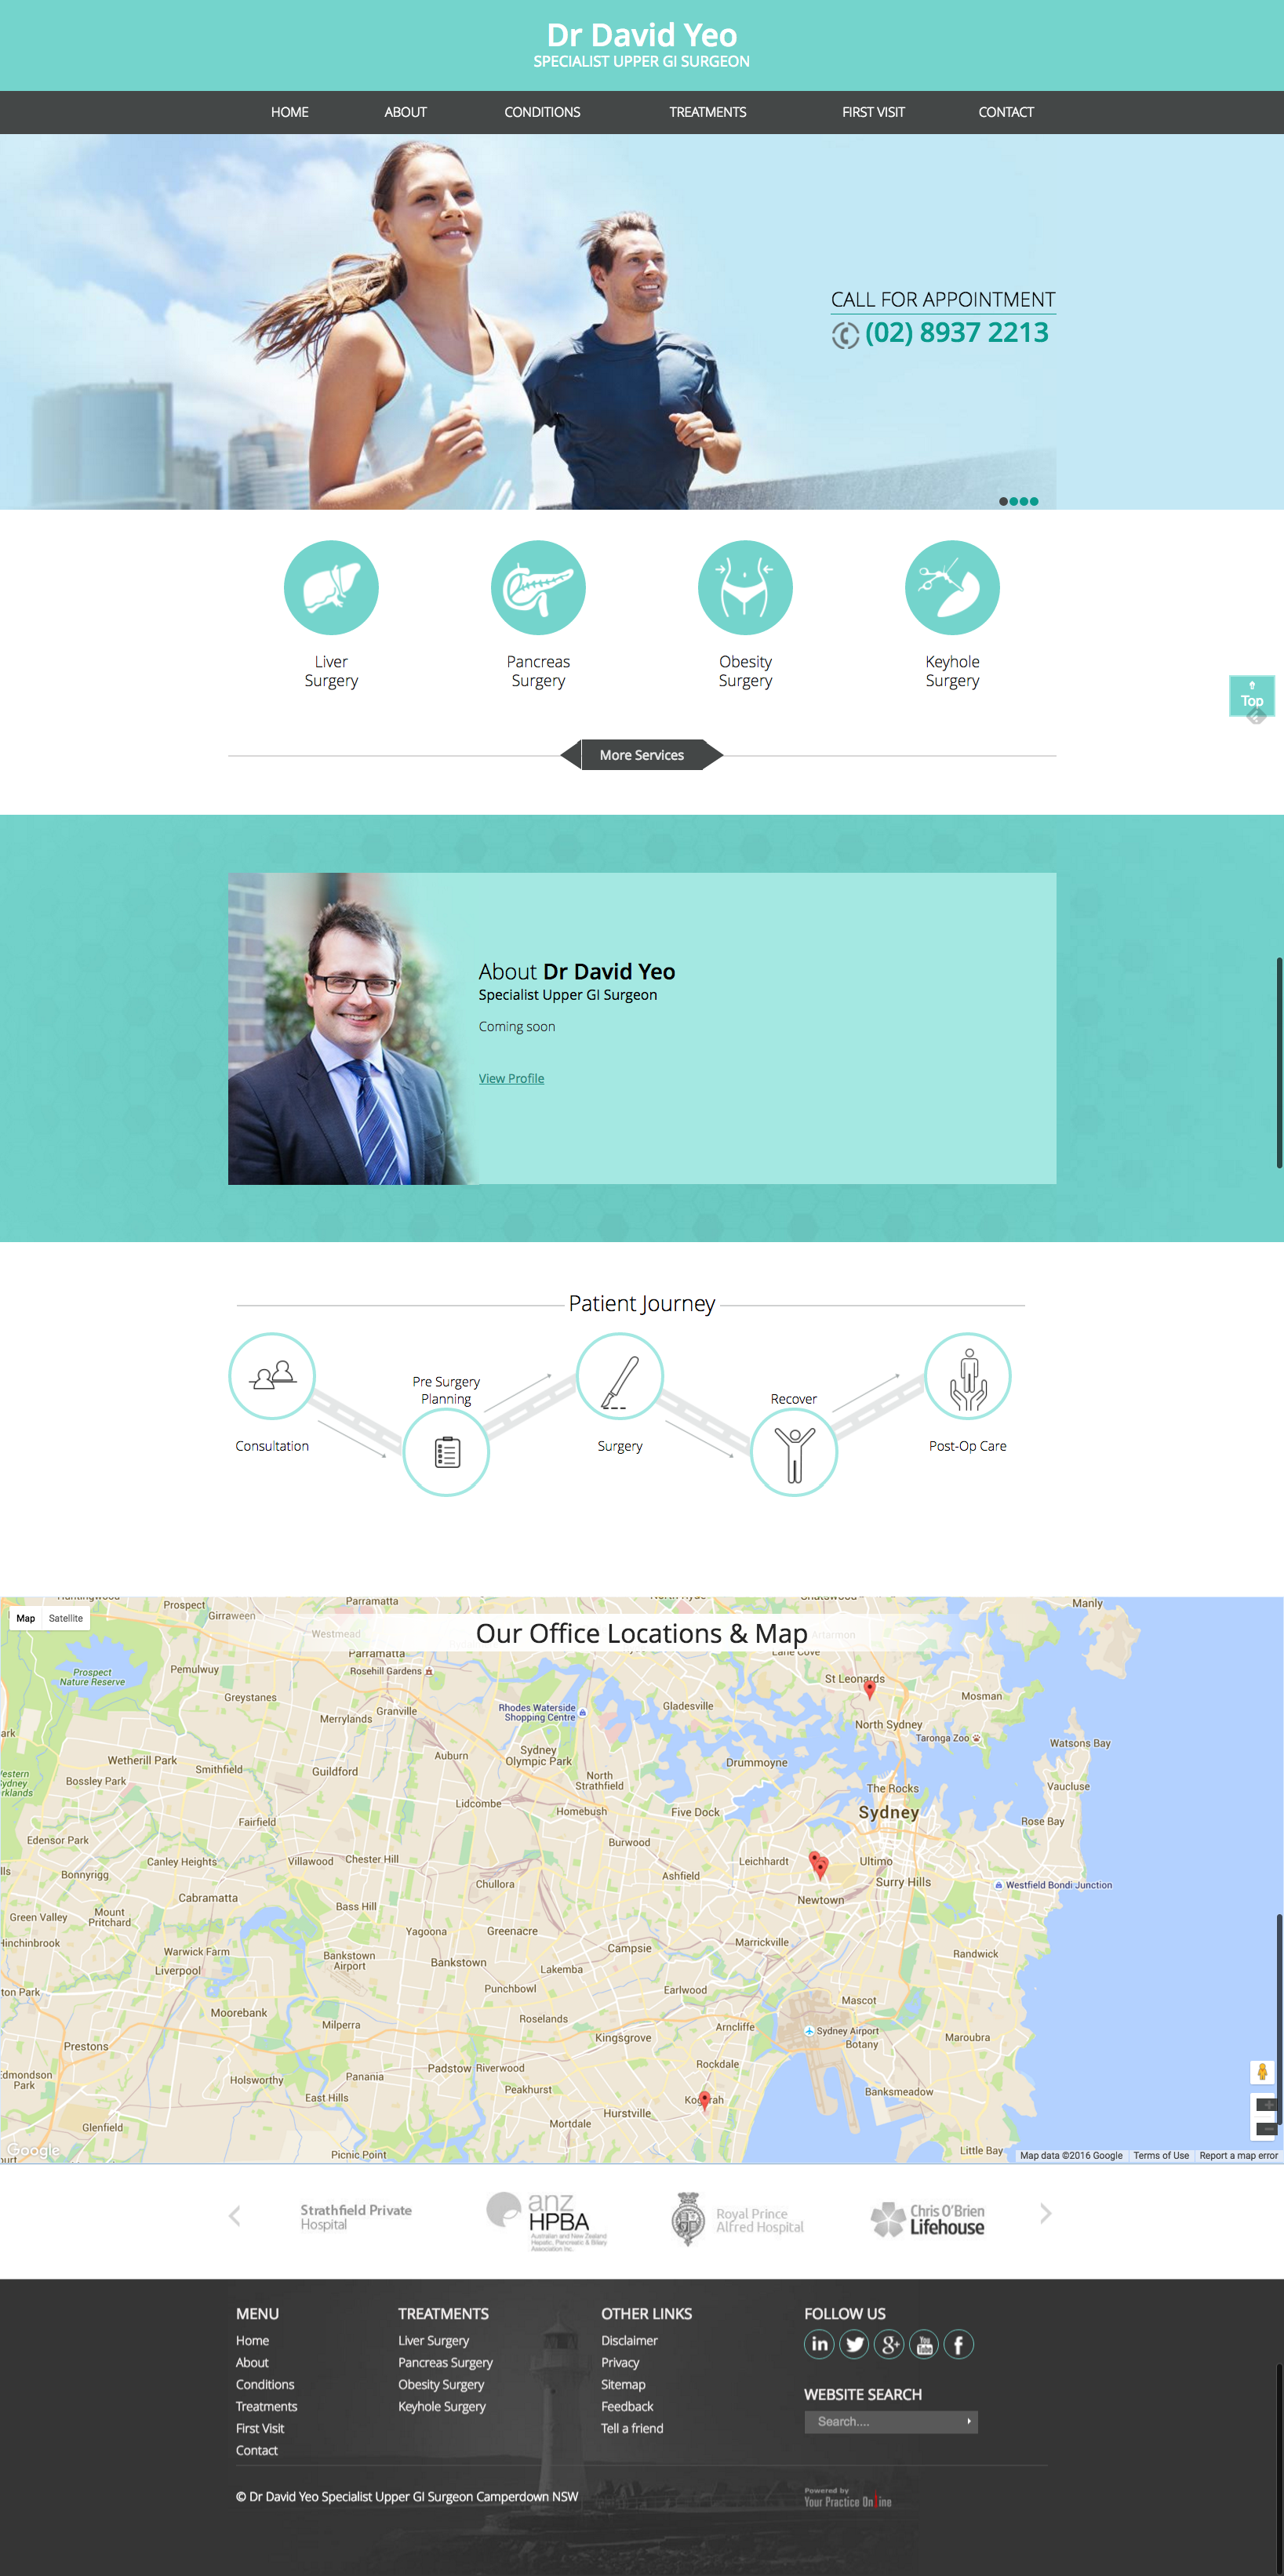 Dr David Yeo Specialist Upper GI Surgeon Camperdown NSW.png